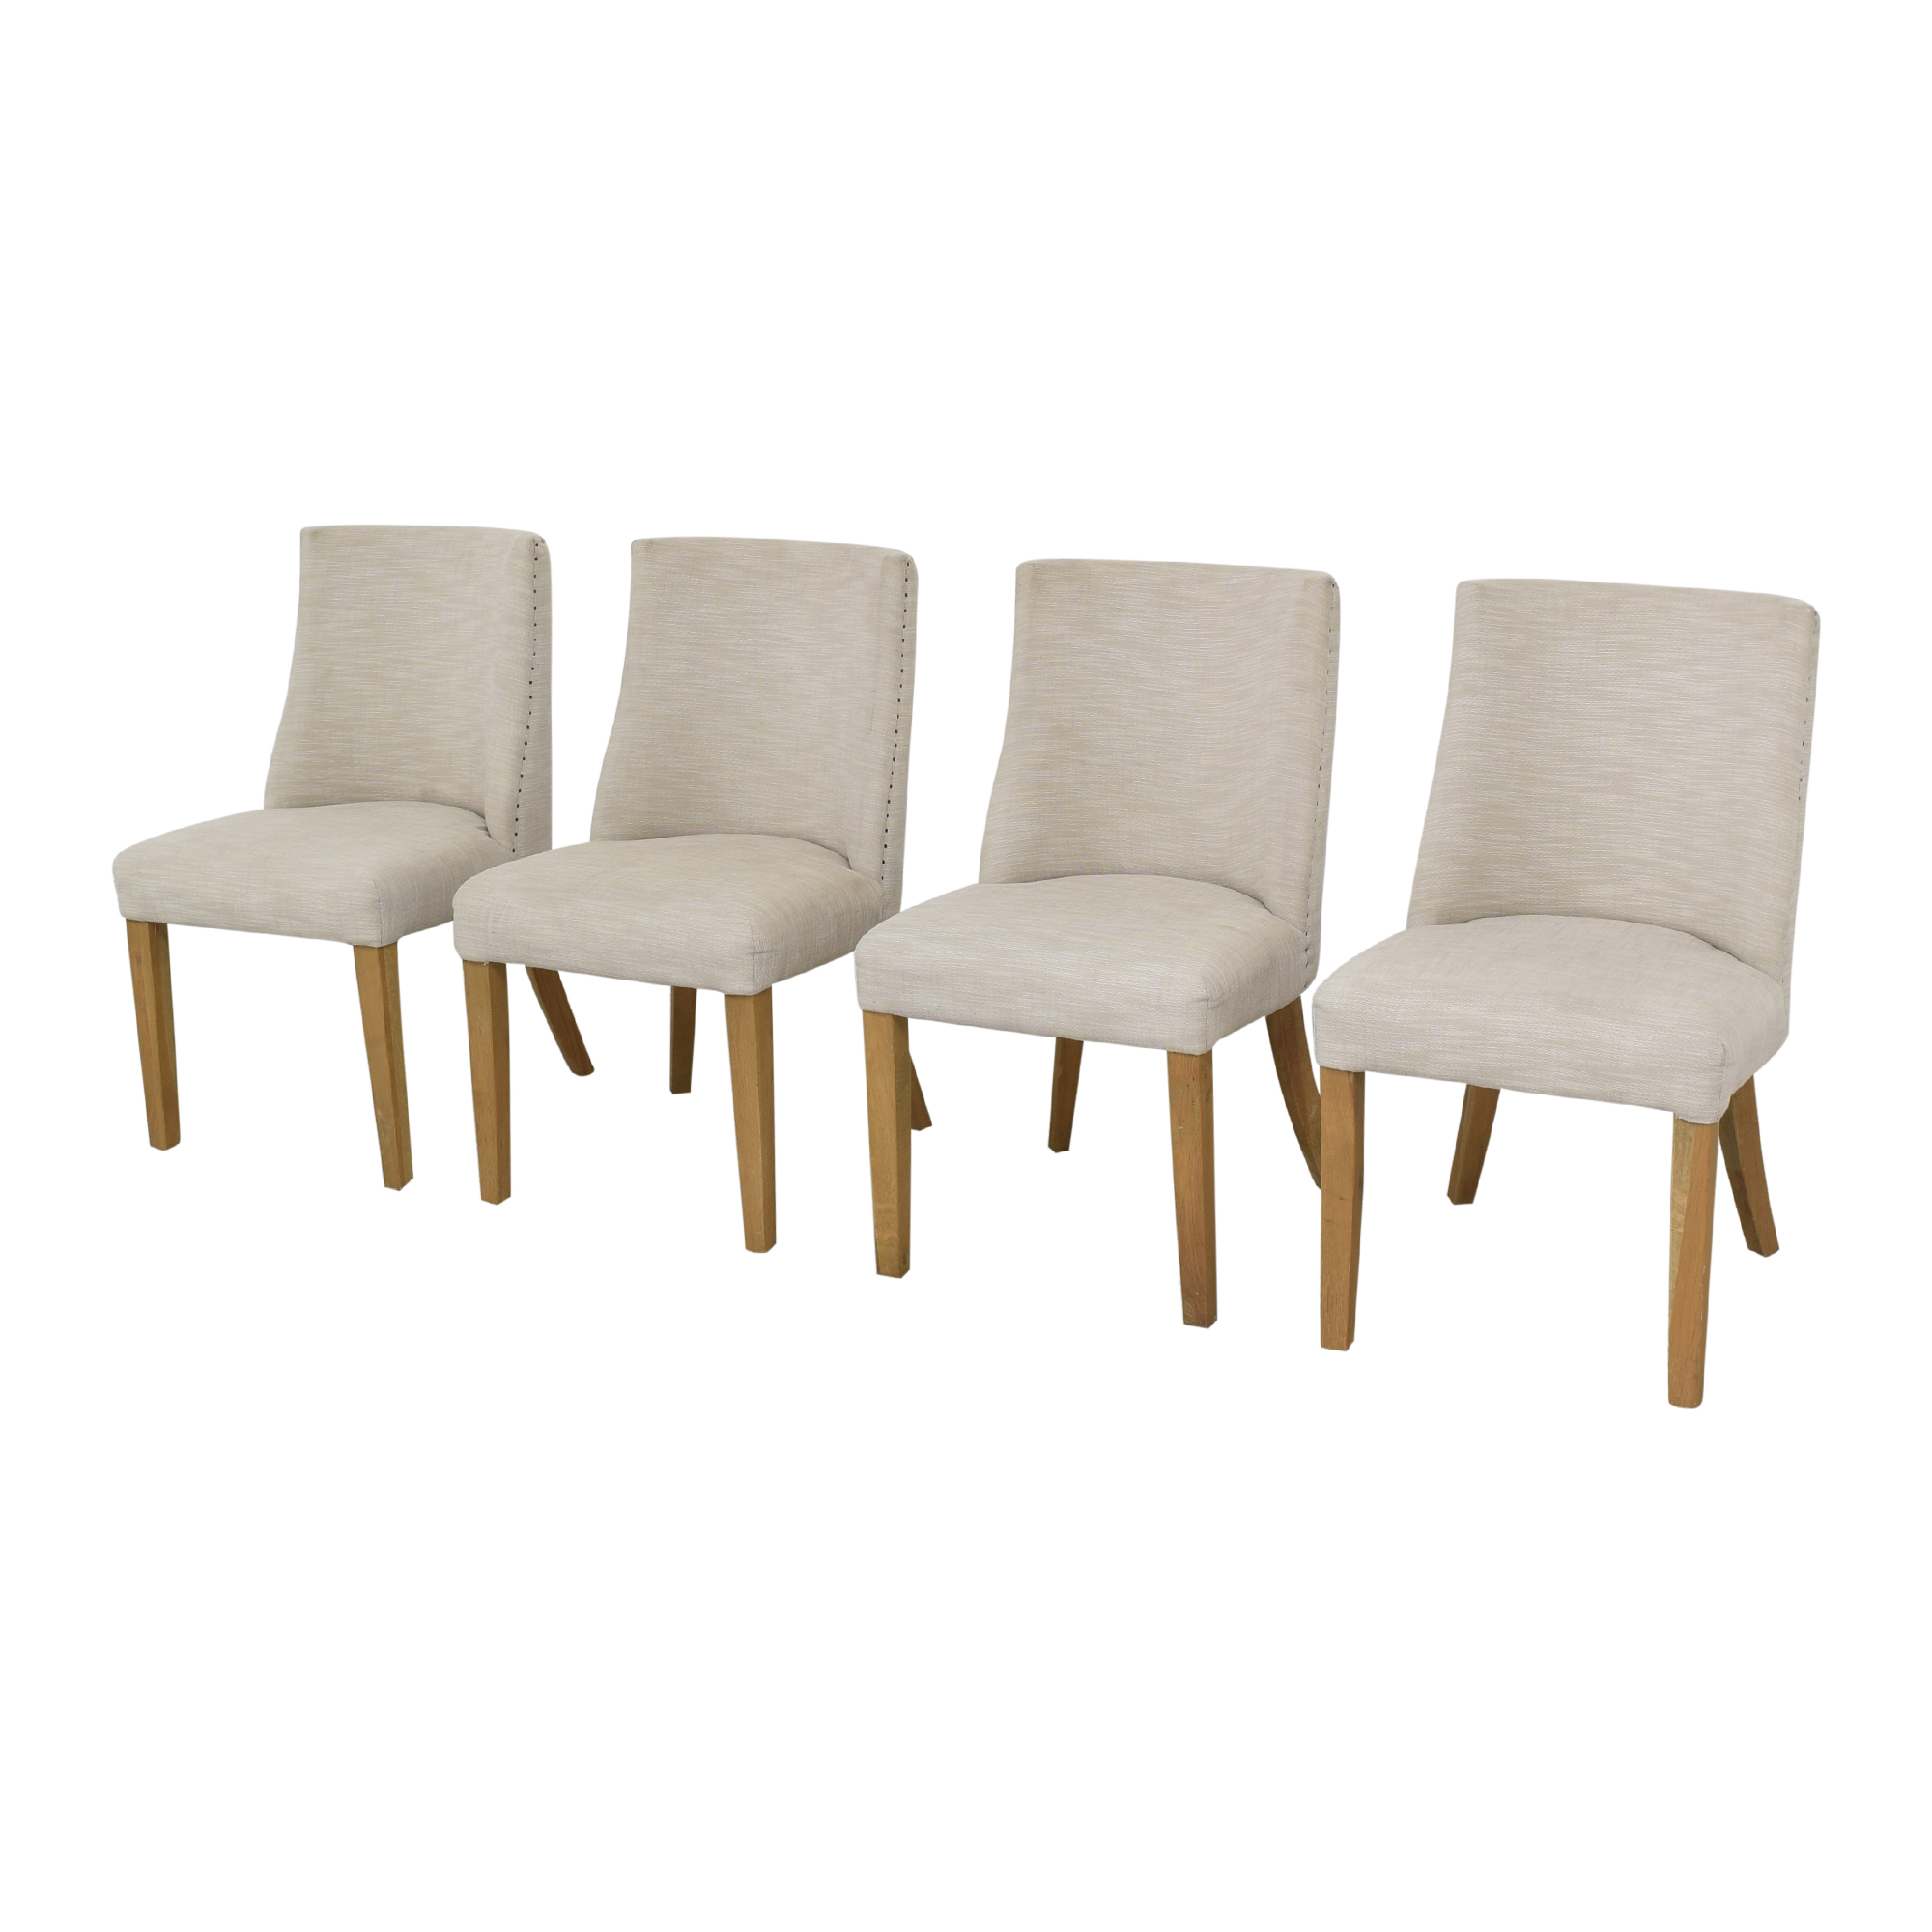 Restoration Hardware Restoration Hardware 1940s French Barrelback Fabric Side Chairs coupon